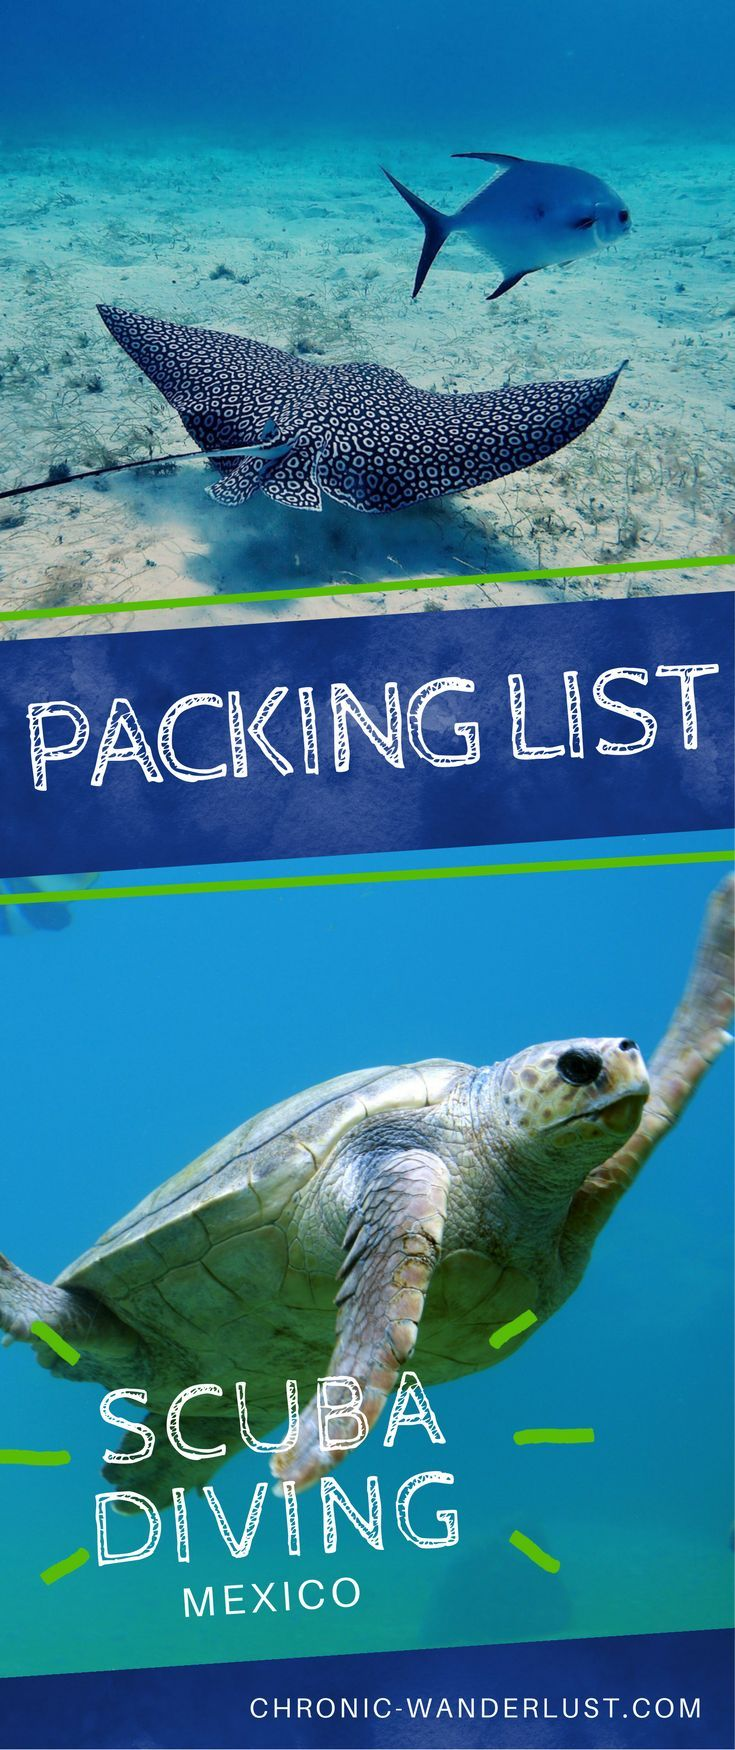 Packing list for your trip to Mexico! Scuba Diving Packing List | plus free Download!  With so many enchanting #dive locations, #Mexico should be on every scuba diver's bucketlist! Find out how to prepare for a #beautiful #diving experience when you #travel to Mexico. This #packinglist covers it all and will have you in the #water in no time!